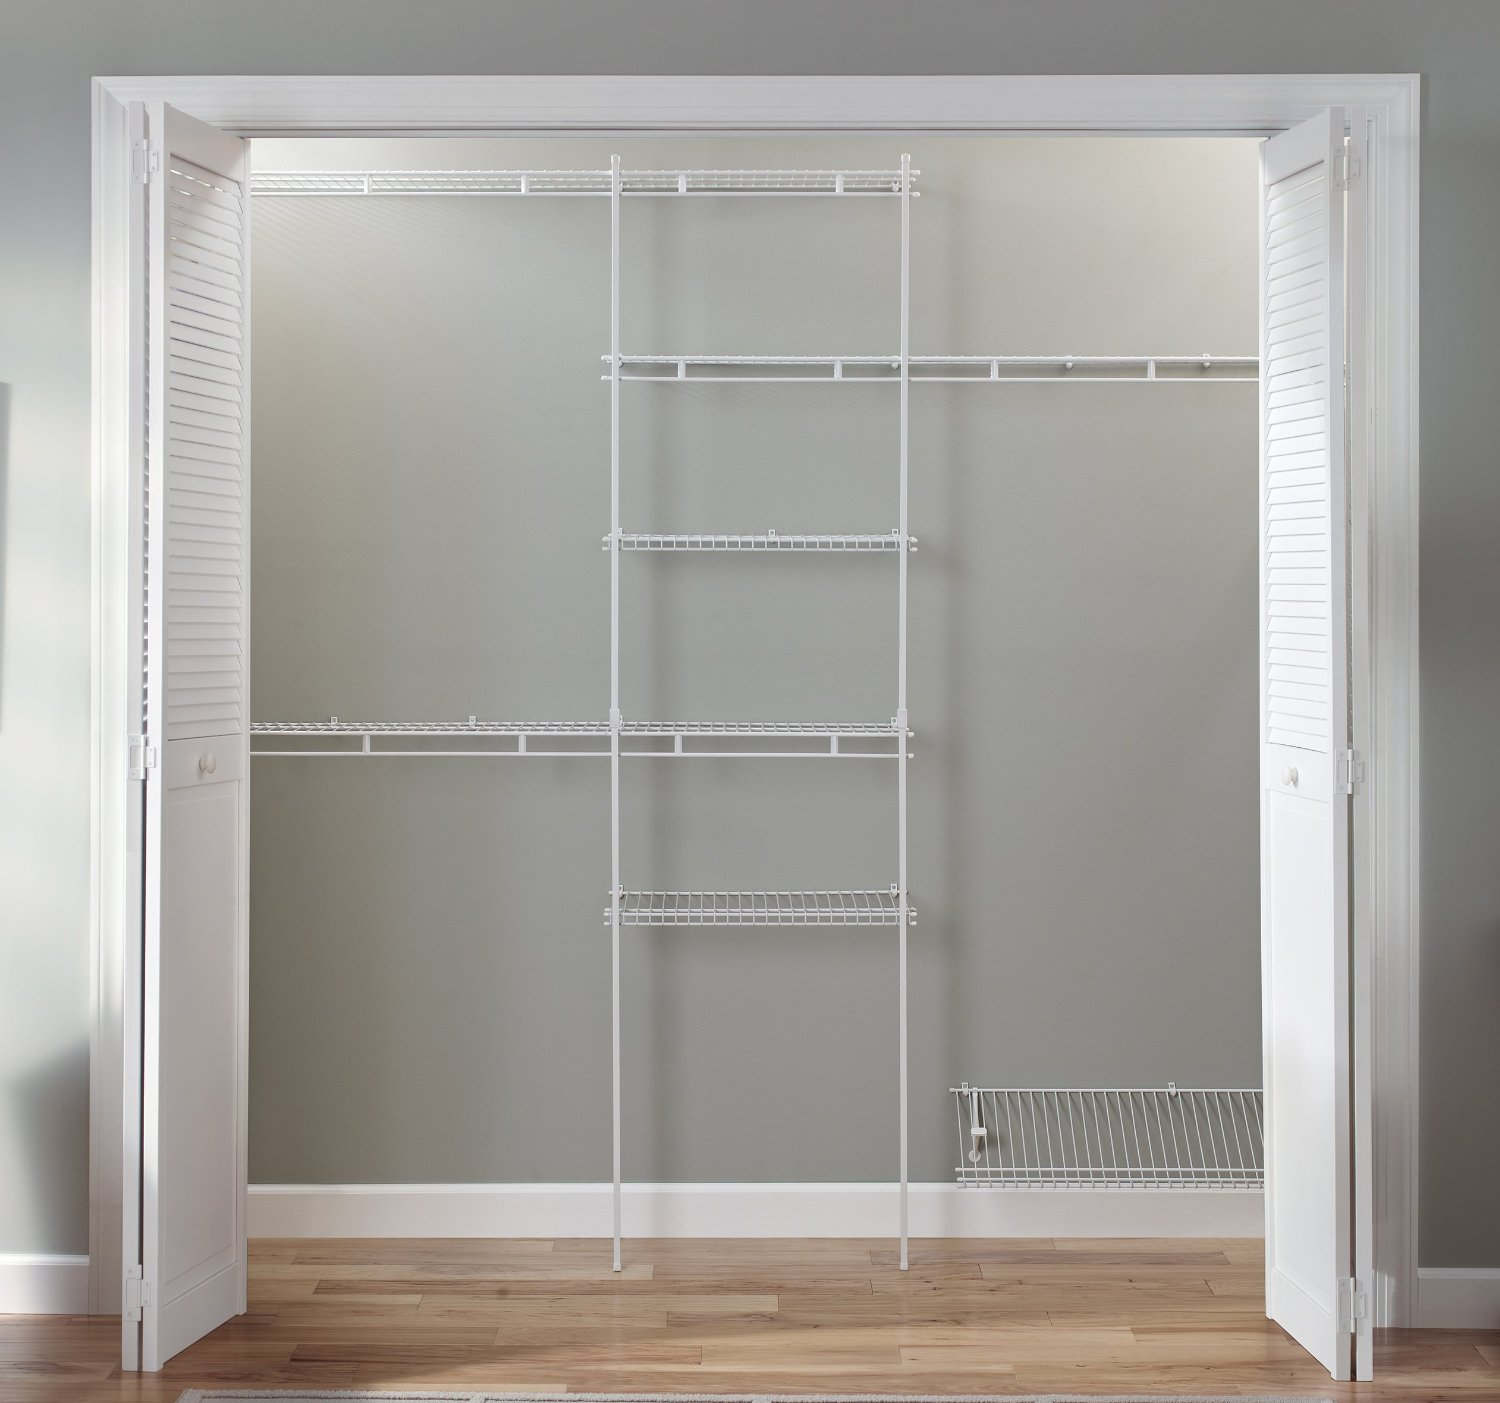 » ClosetMaid-Closet Organizer Kit-5-to-8-Feet-White Color ...